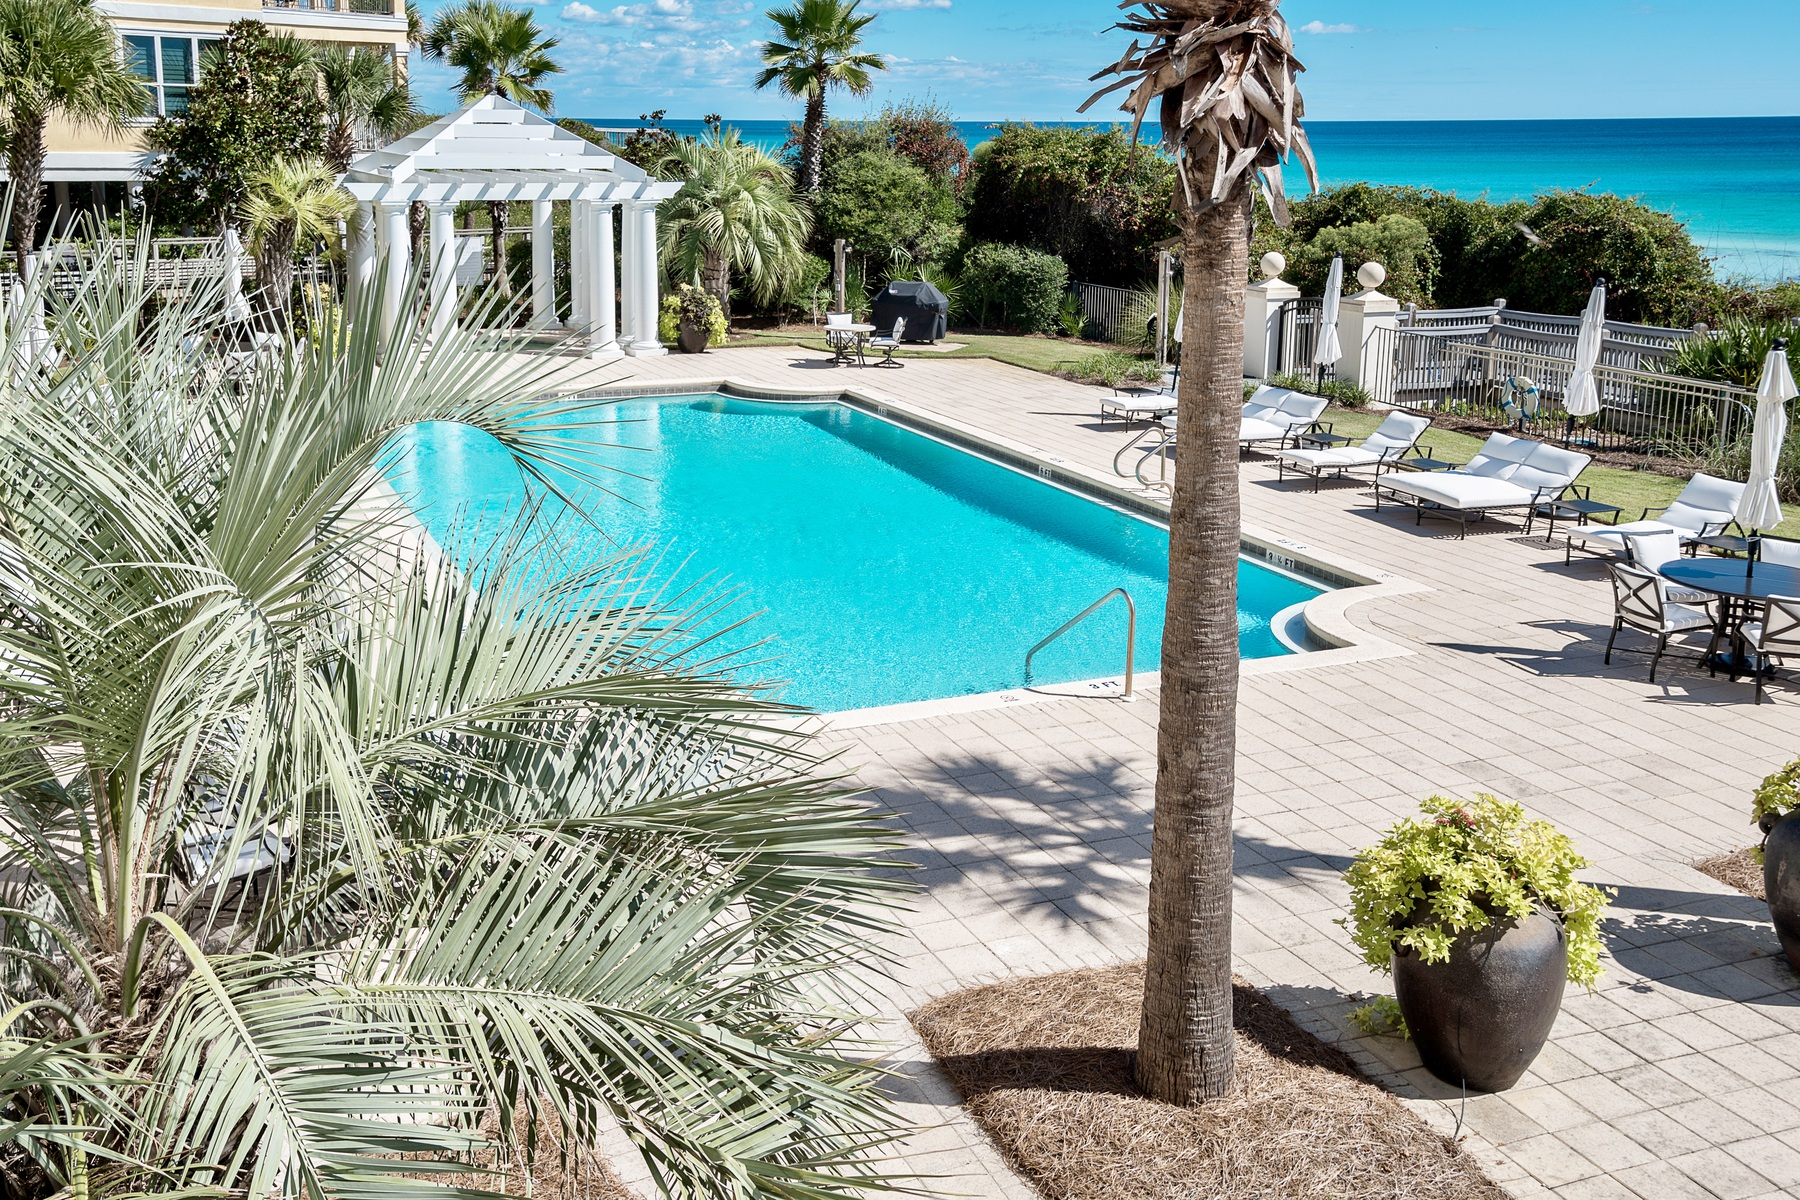 Condominium for Sale at GULF FRONT CONDO LIVES LIKE A HOME 4128 E County Highway 30A 205 Santa Rosa Beach, Florida, 32459 United States